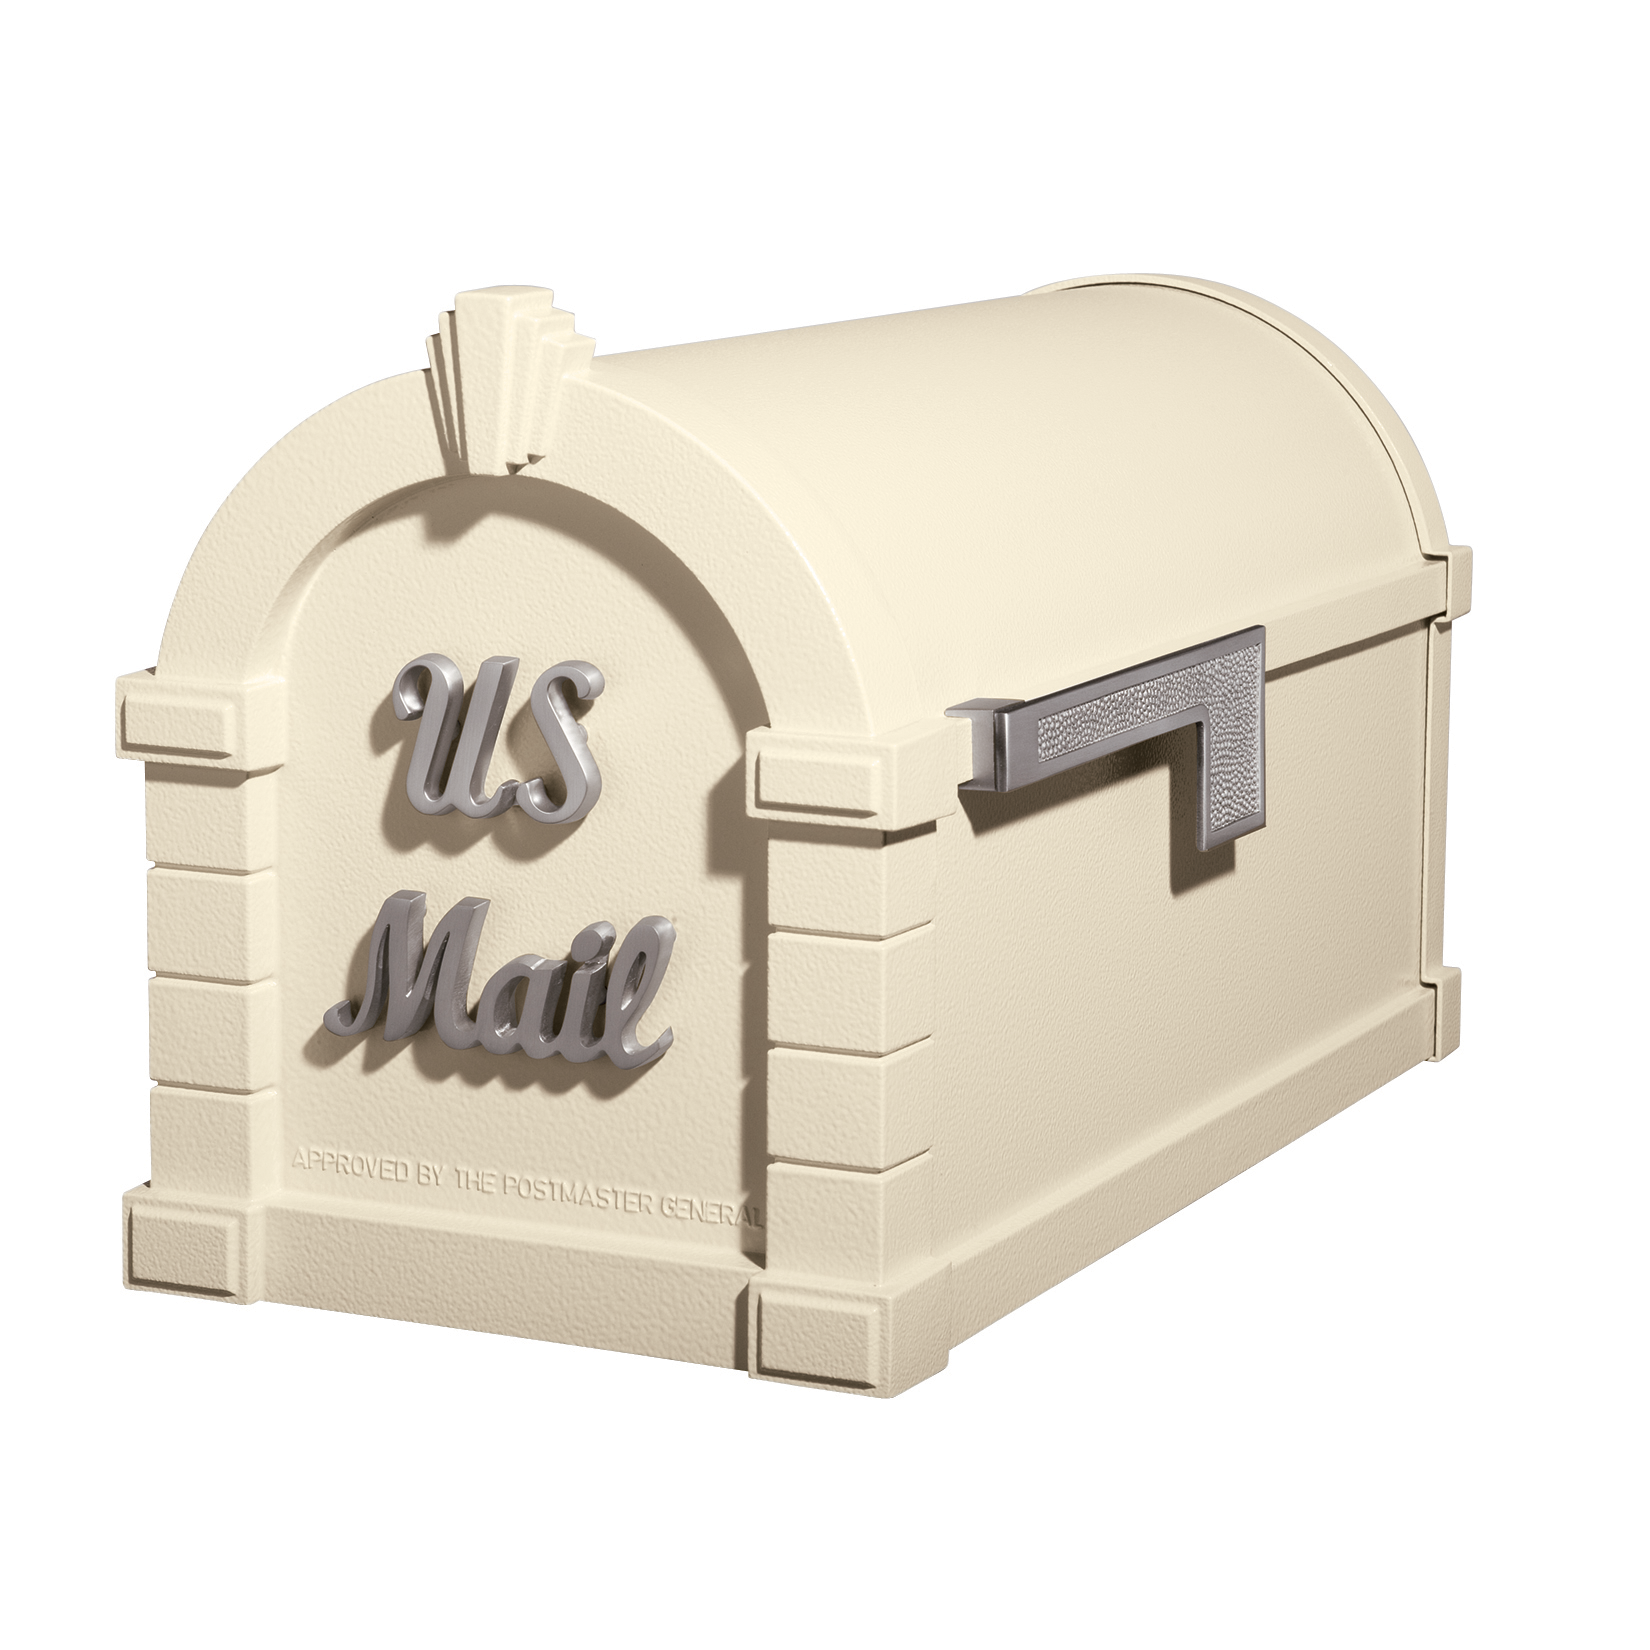 Gaines Signature Keystone Mailboxes - Almond with Satin Nickel